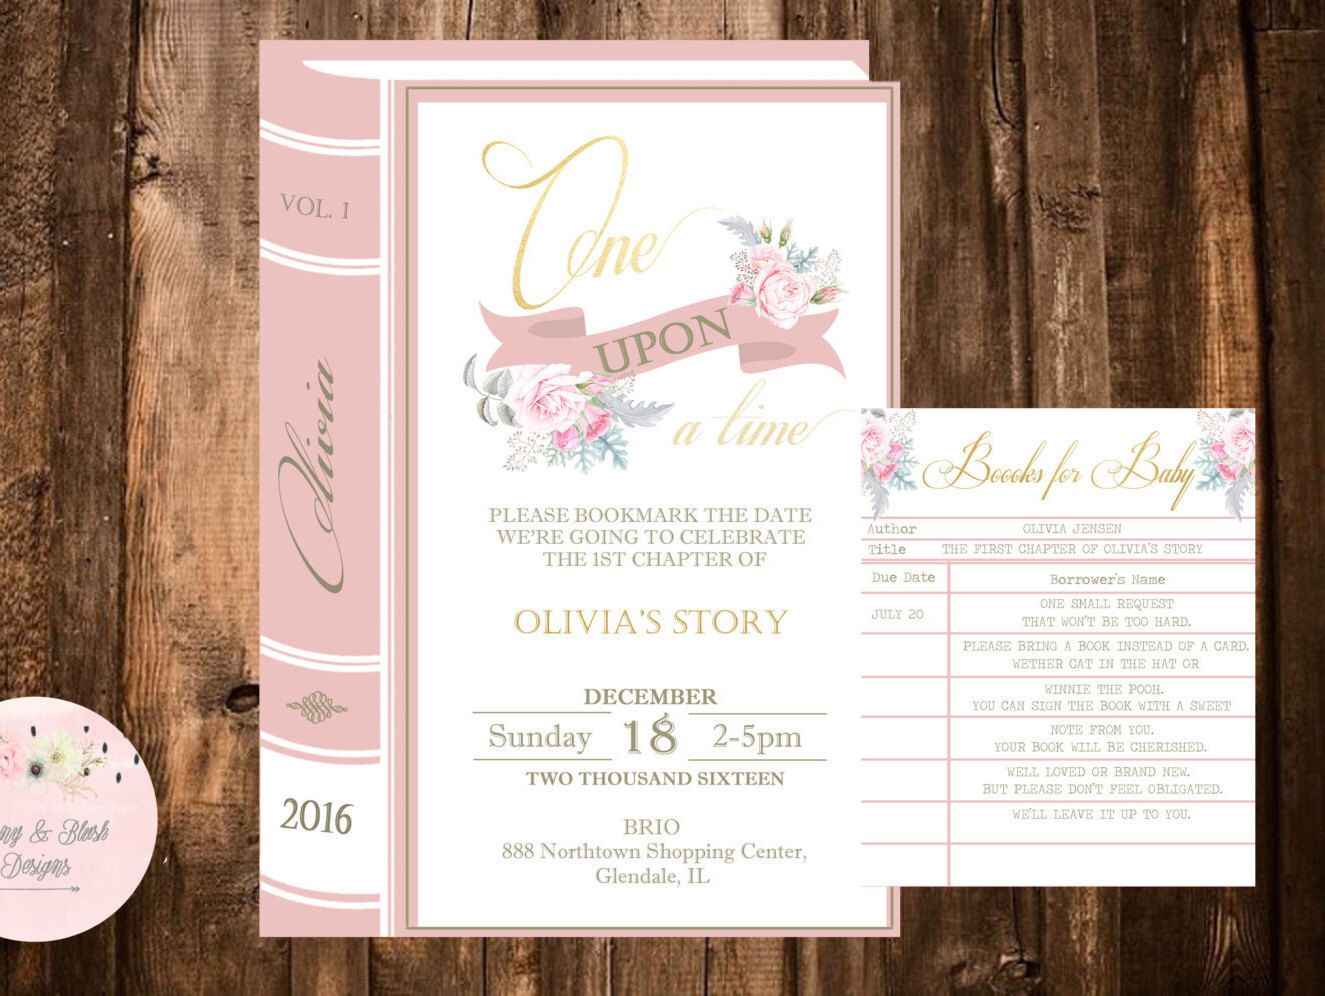 Once Upon a Time Invitation, Library Book Invitation Kit, Books for ...